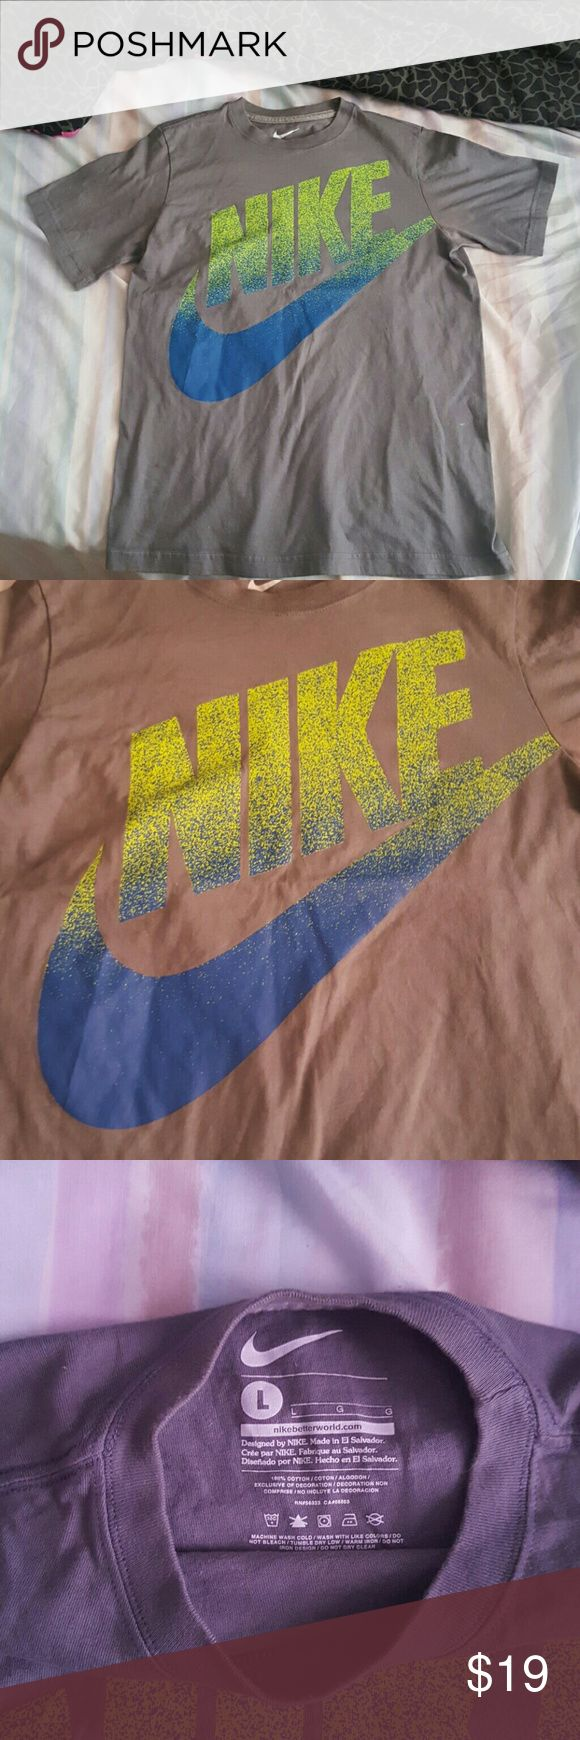 Nike t shirt Boys nike t shirt. Nike letters are in a neon green and blue. Shirt is gray overall. Only work 2x. Lil discoloration near sleeve but BARELY noticeable. 9.5/10 condition. Can fit a womens small. Nike Shirts & Tops Tees - Short Sleeve